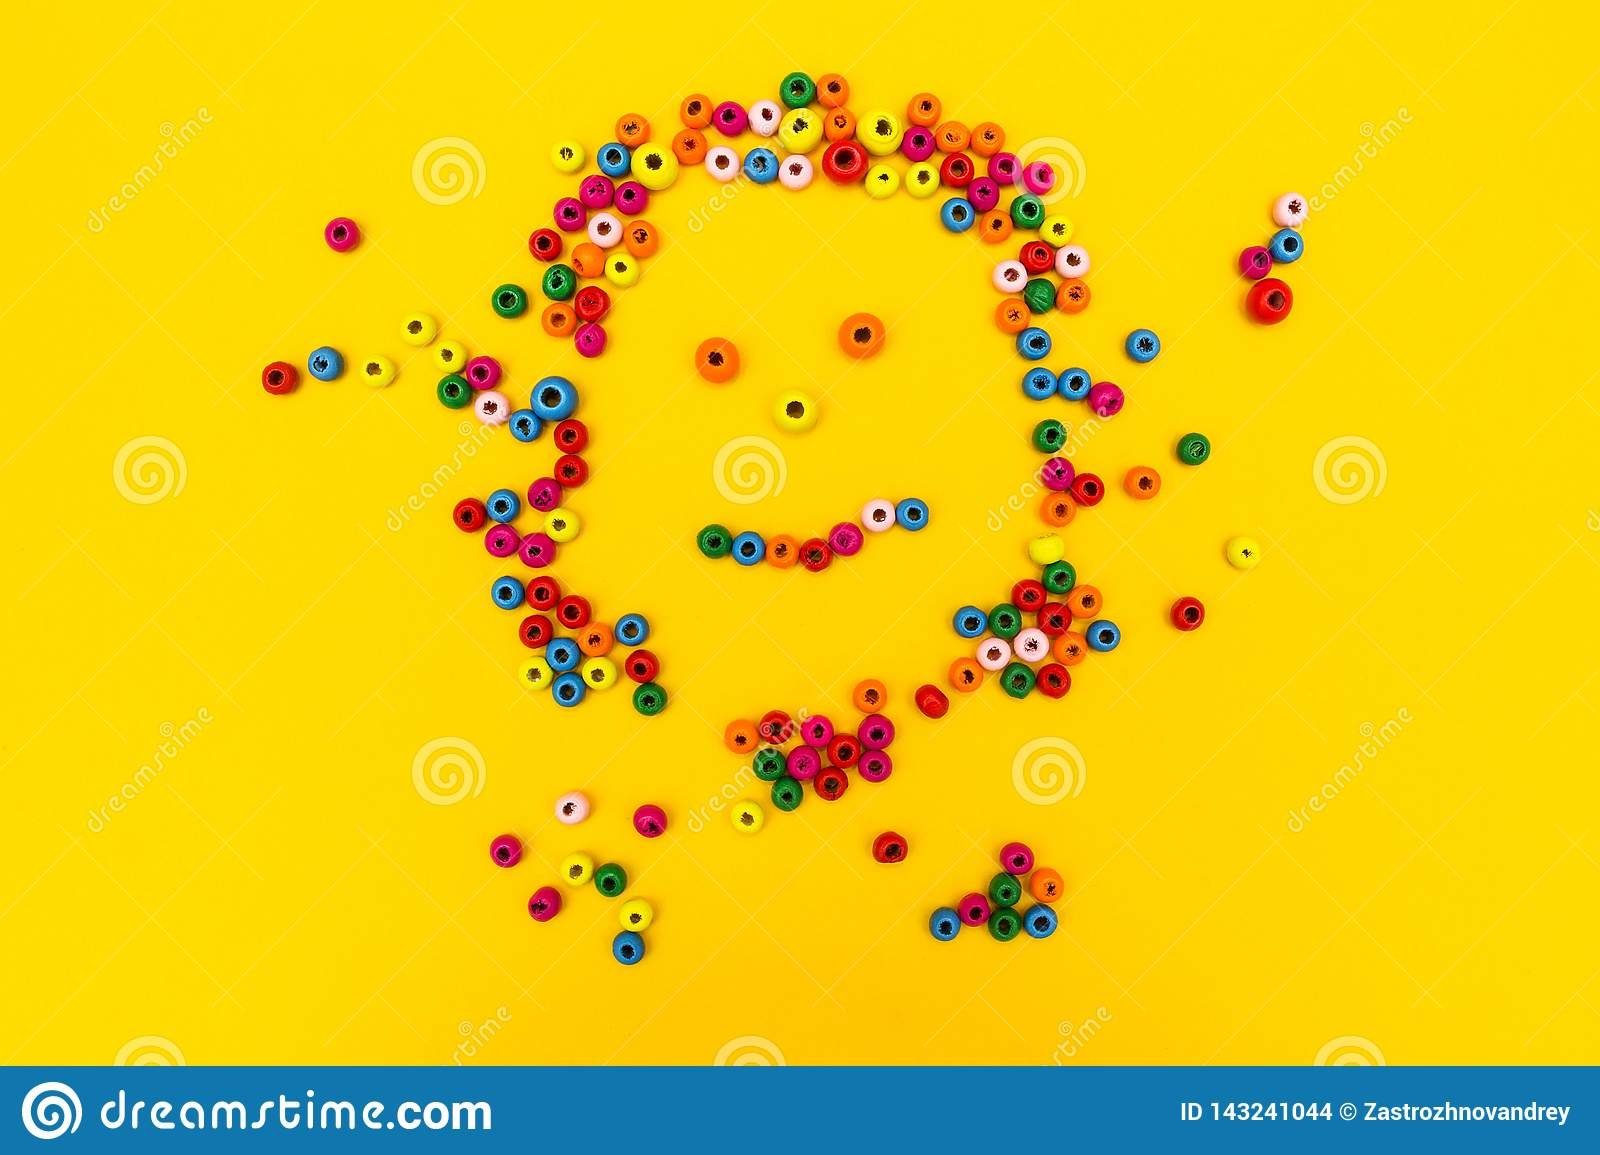 Smiling little man smiley from multi-colored round toys on a yellow background